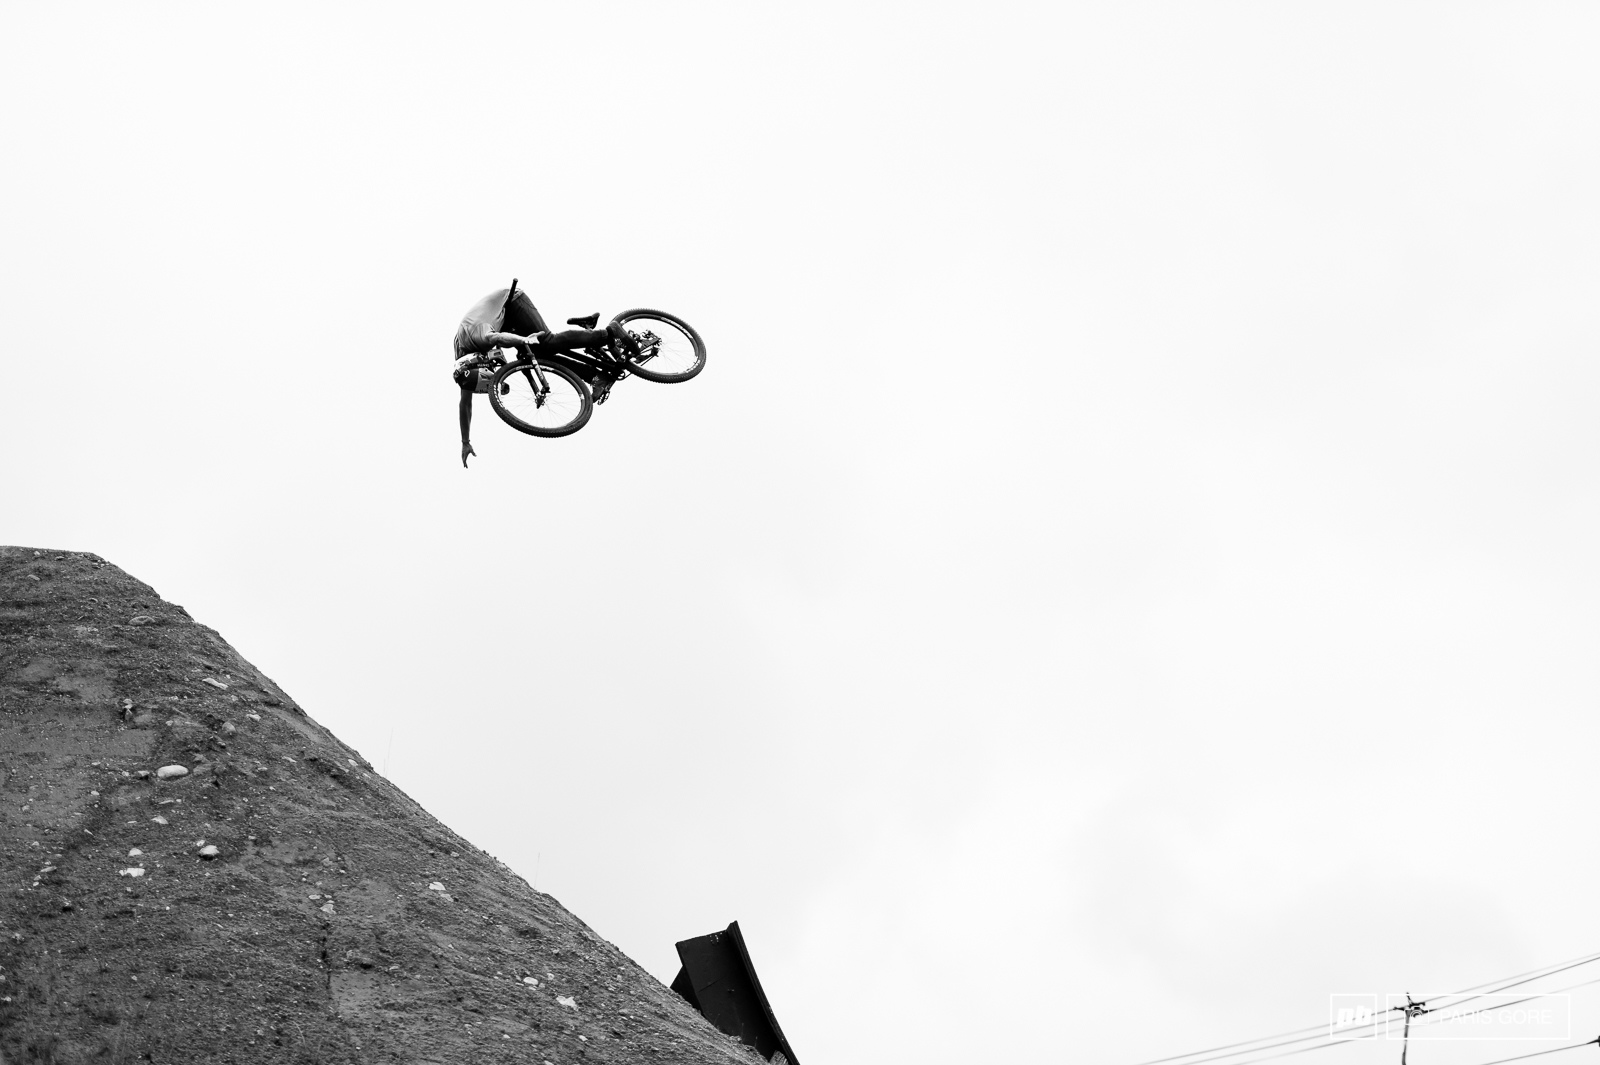 Anthony Messere with a laid out frontflip tuck.